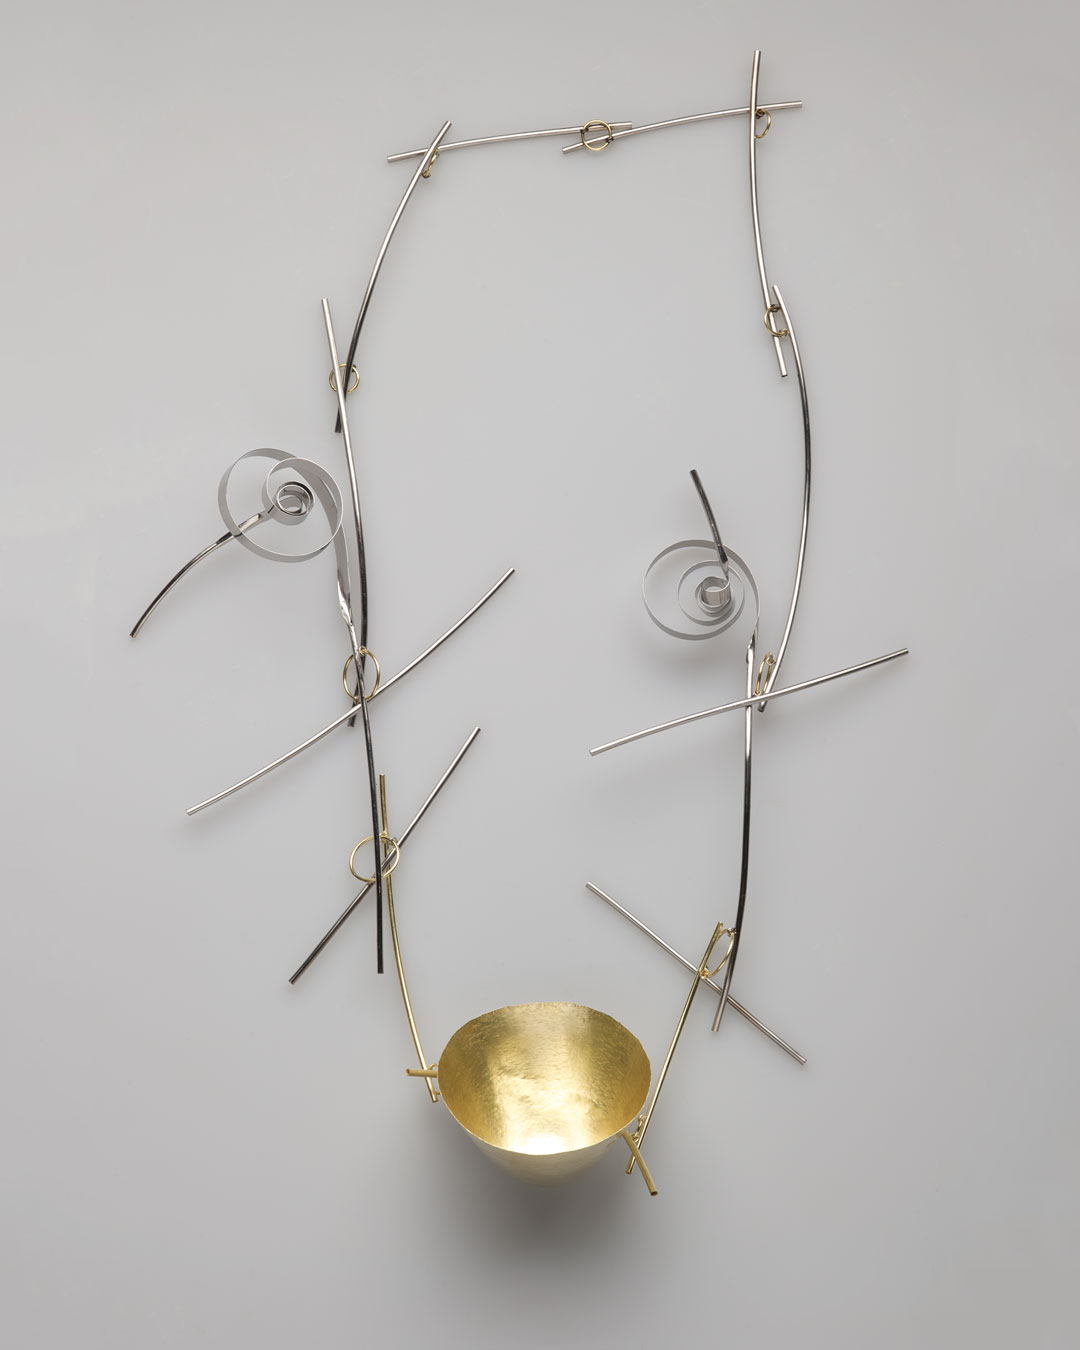 Andrea Wippermann, Japanischer Garten I (Japanese Garden I), 2011, necklace; gold, high-grade steel, 360 x 210 x 50 mm, €4600